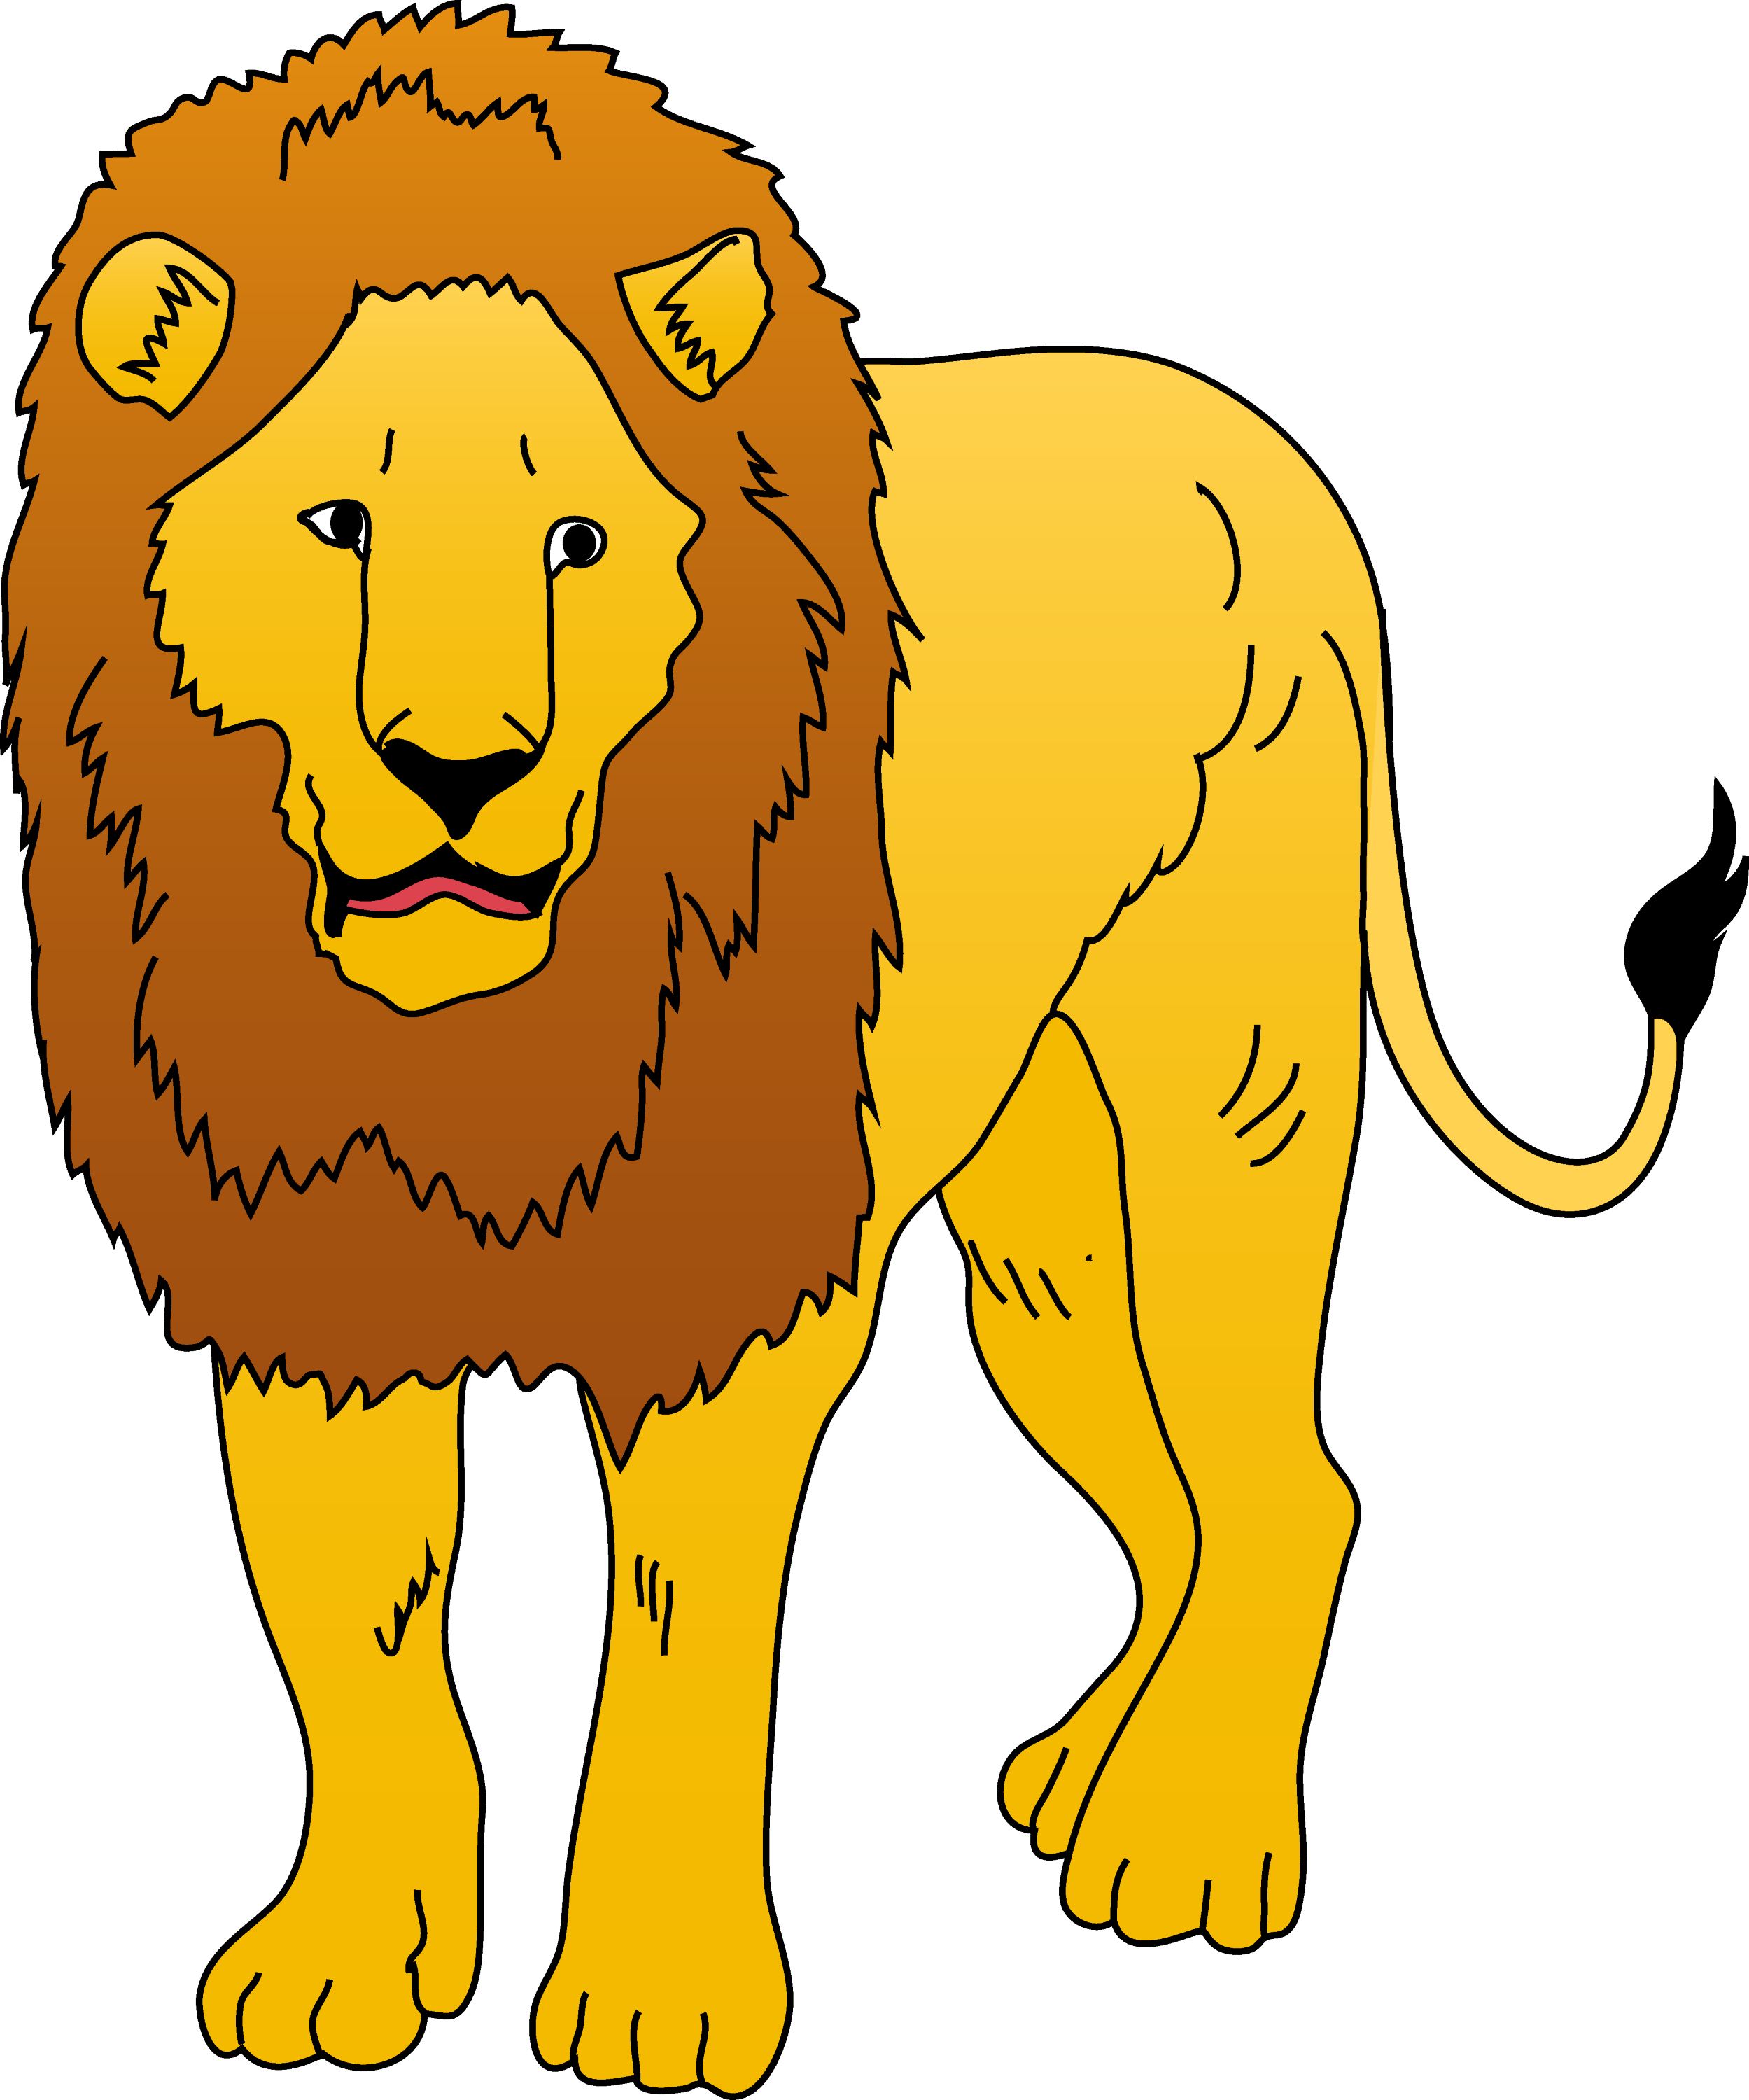 golden lion clipart illustration free clip art rh sweetclipart com lion clipart for kids lion clip art free download